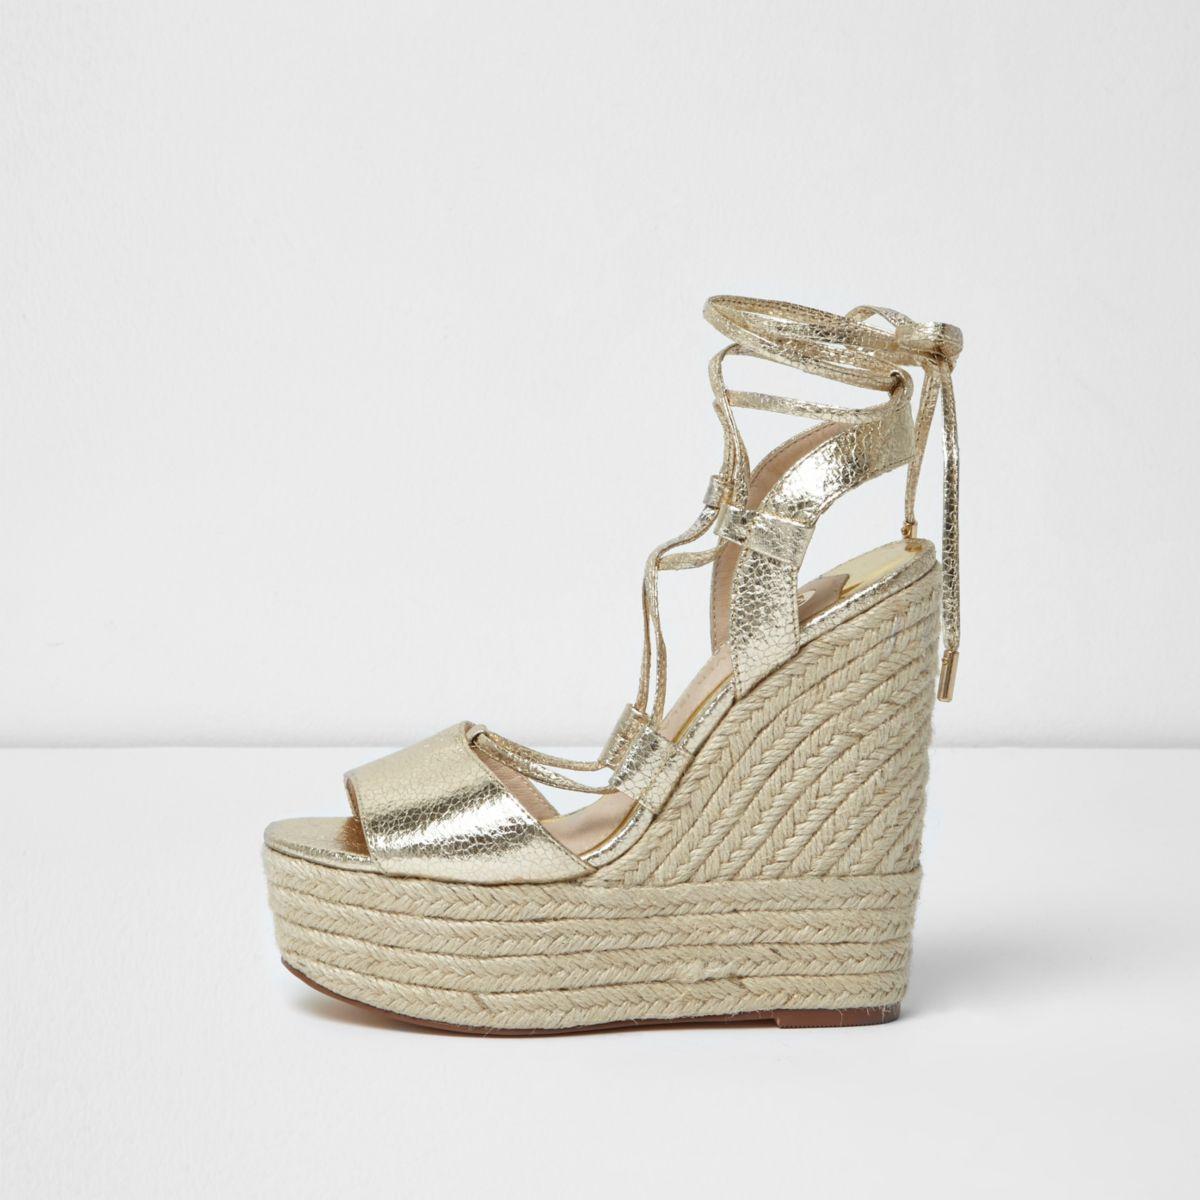 River Island wedges with espadrille flatform heel